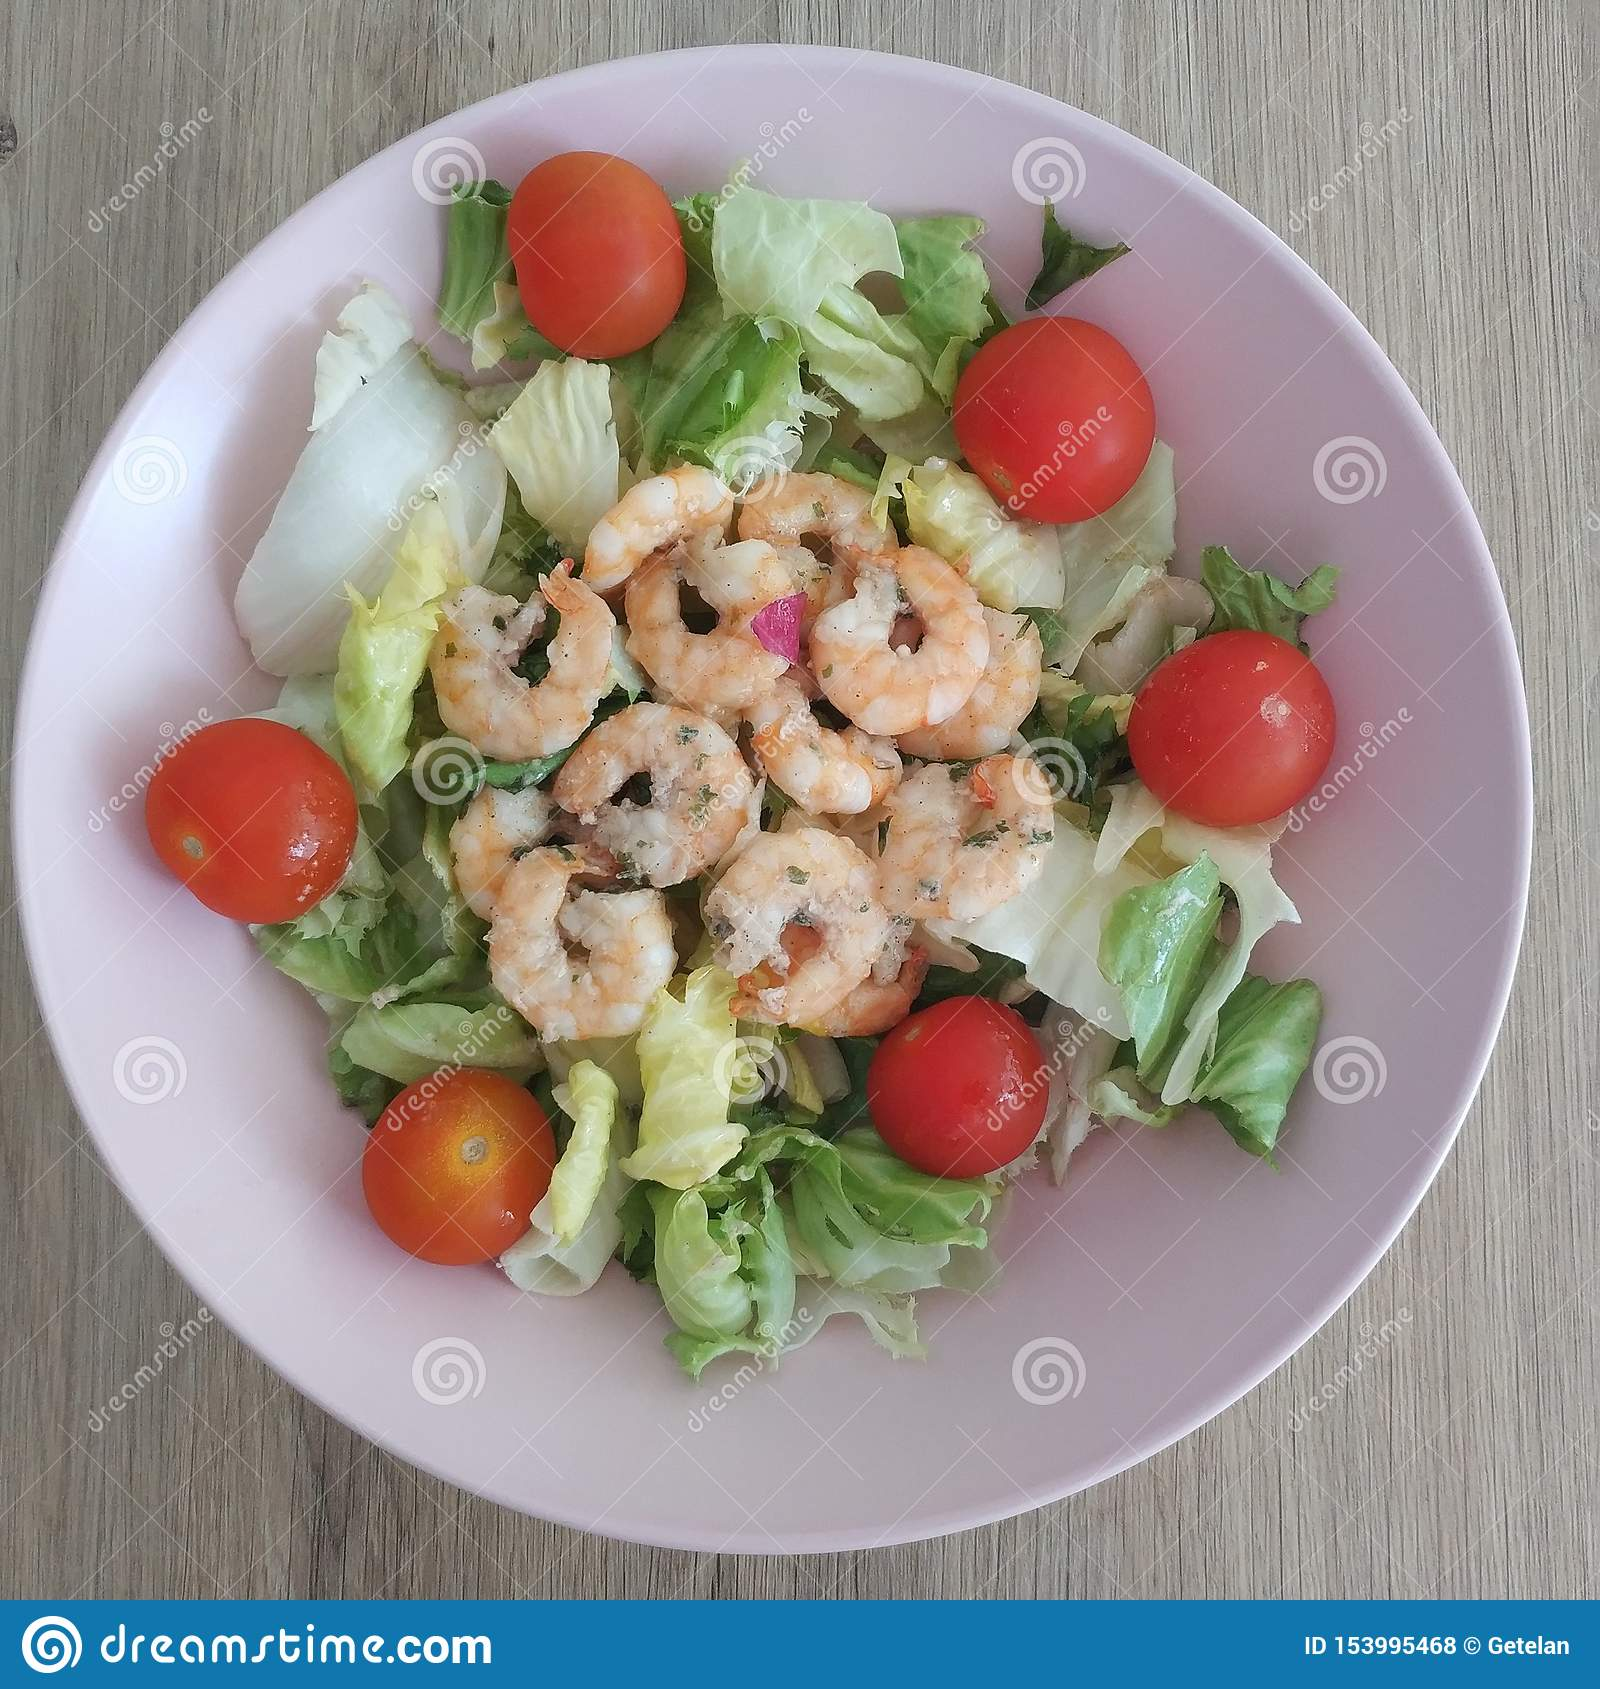 Ketogenic meal, shrimp salad with lettuce mix and tomatoes. Keto food for weight loss.